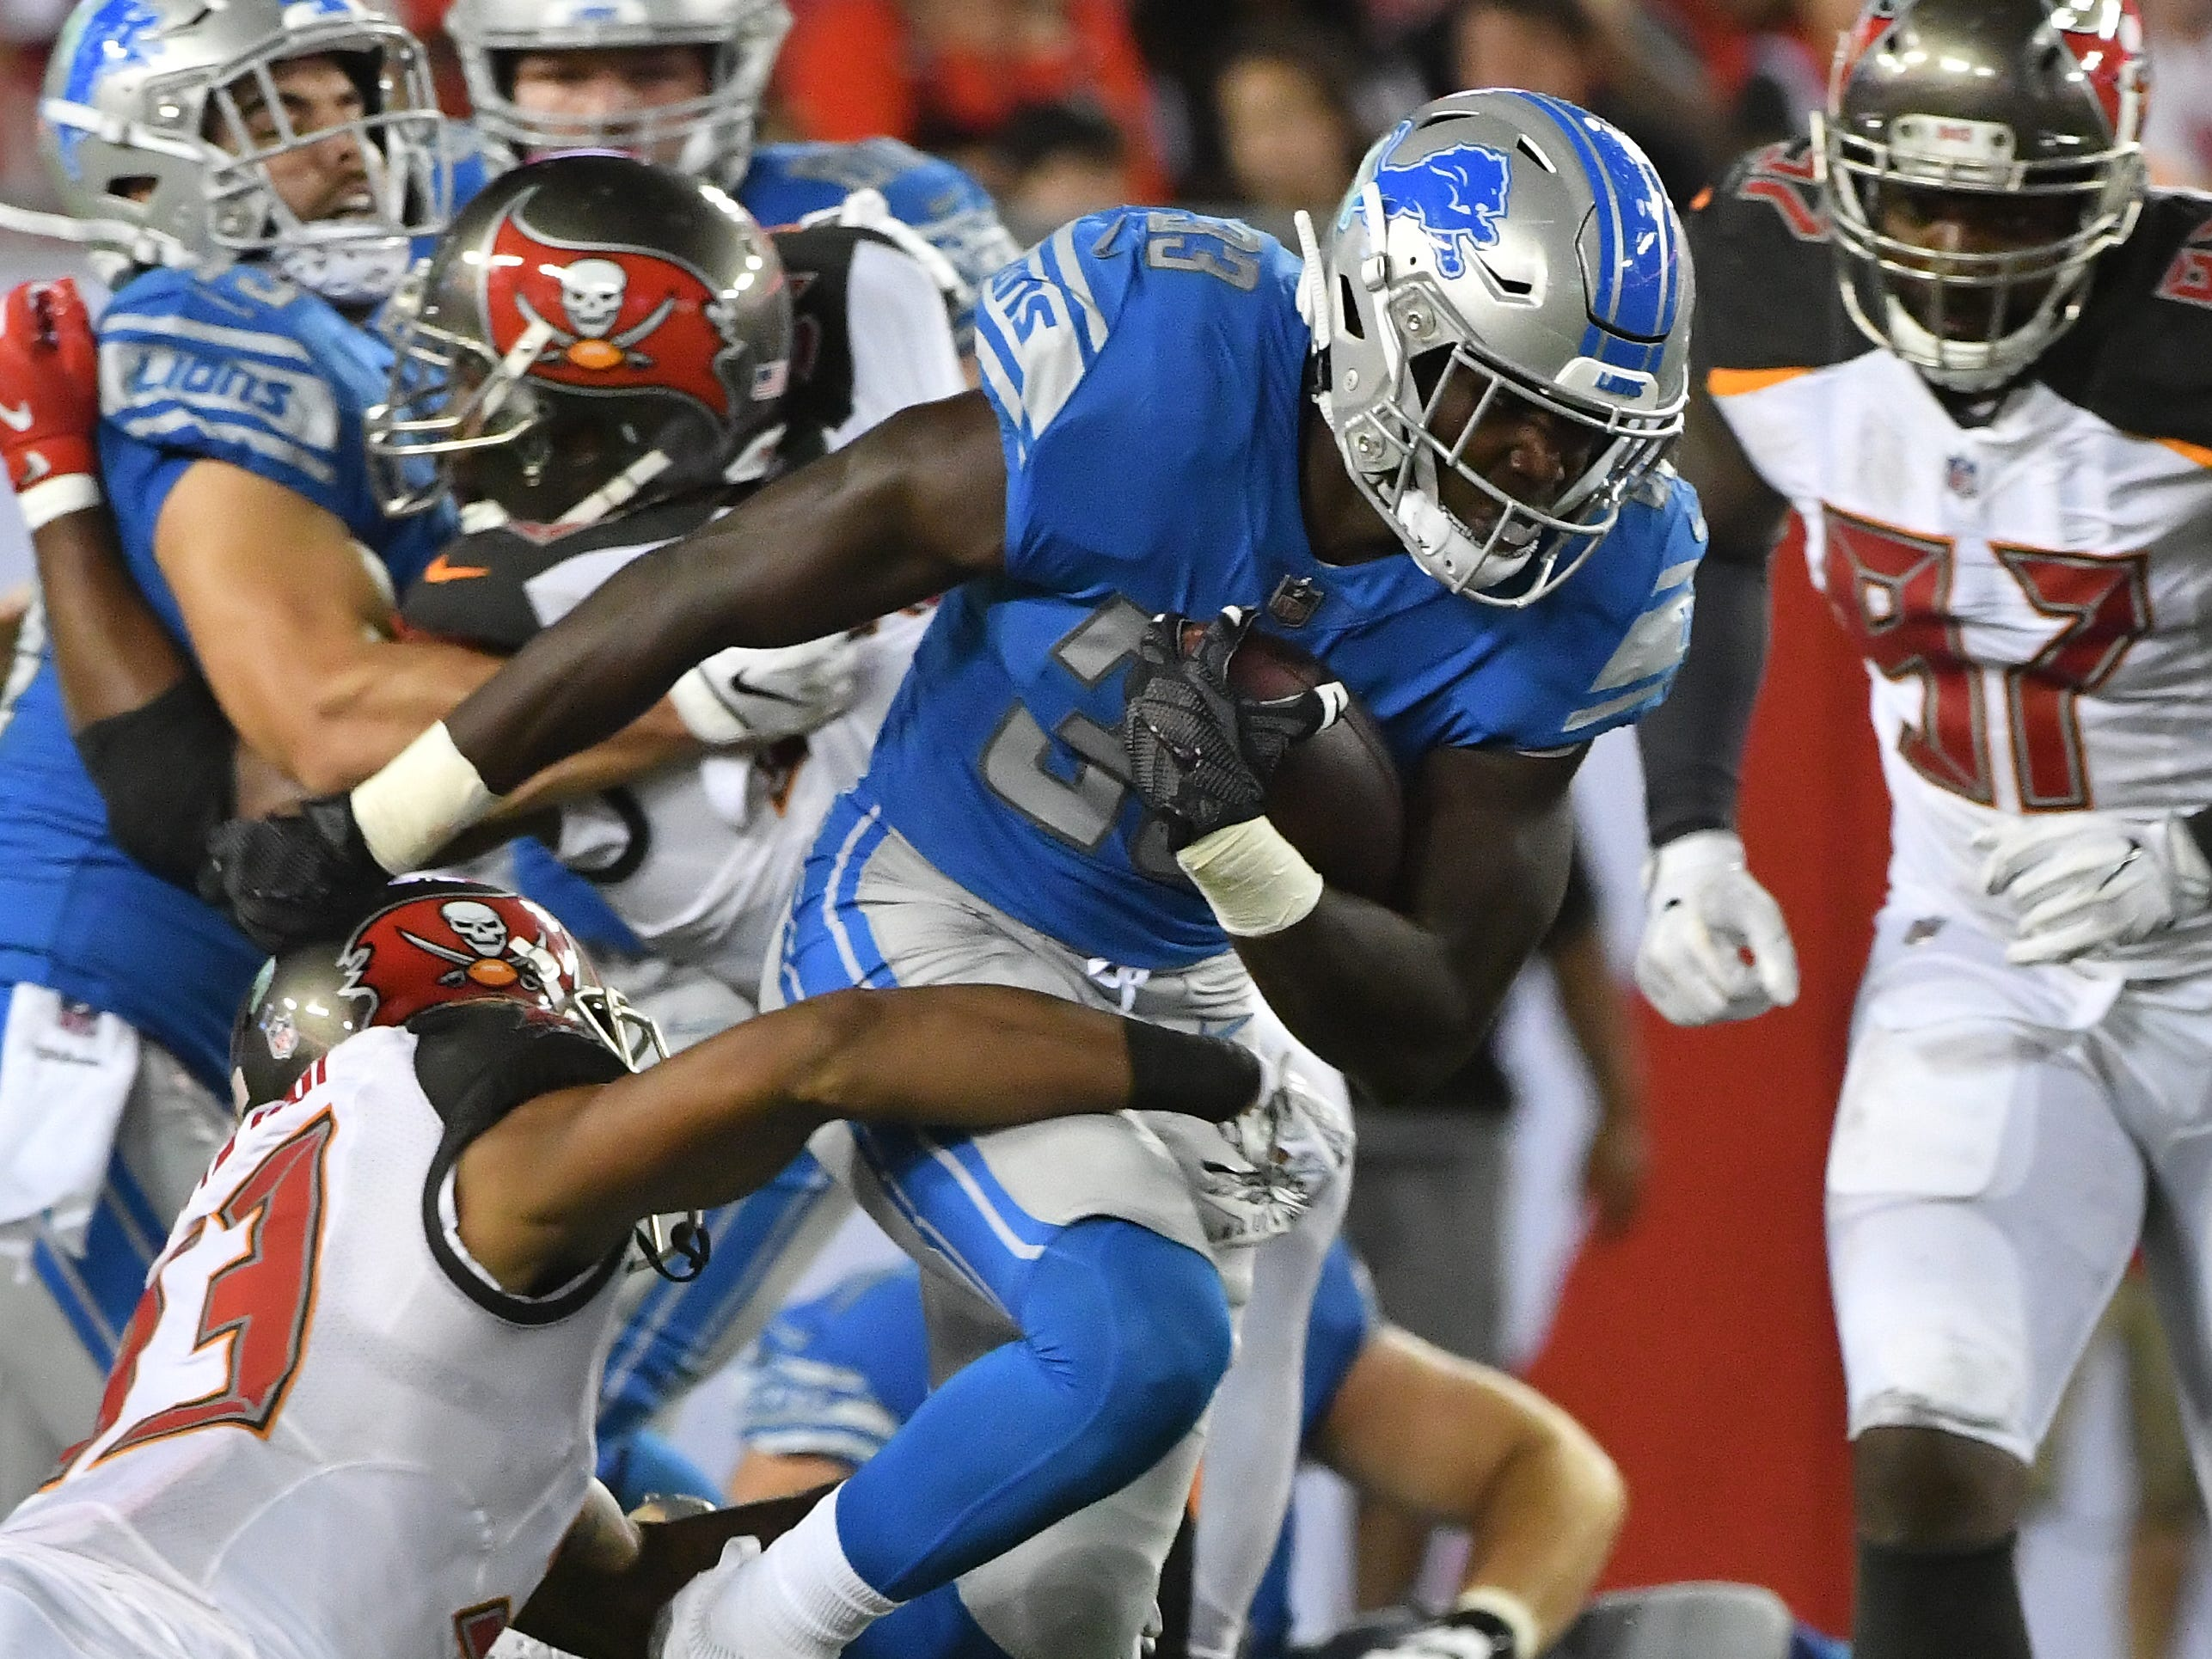 Lions running back Kerryon Johnson picks up yardage before being dragged down by Buccaneers' Chris Conte in the second quarter.